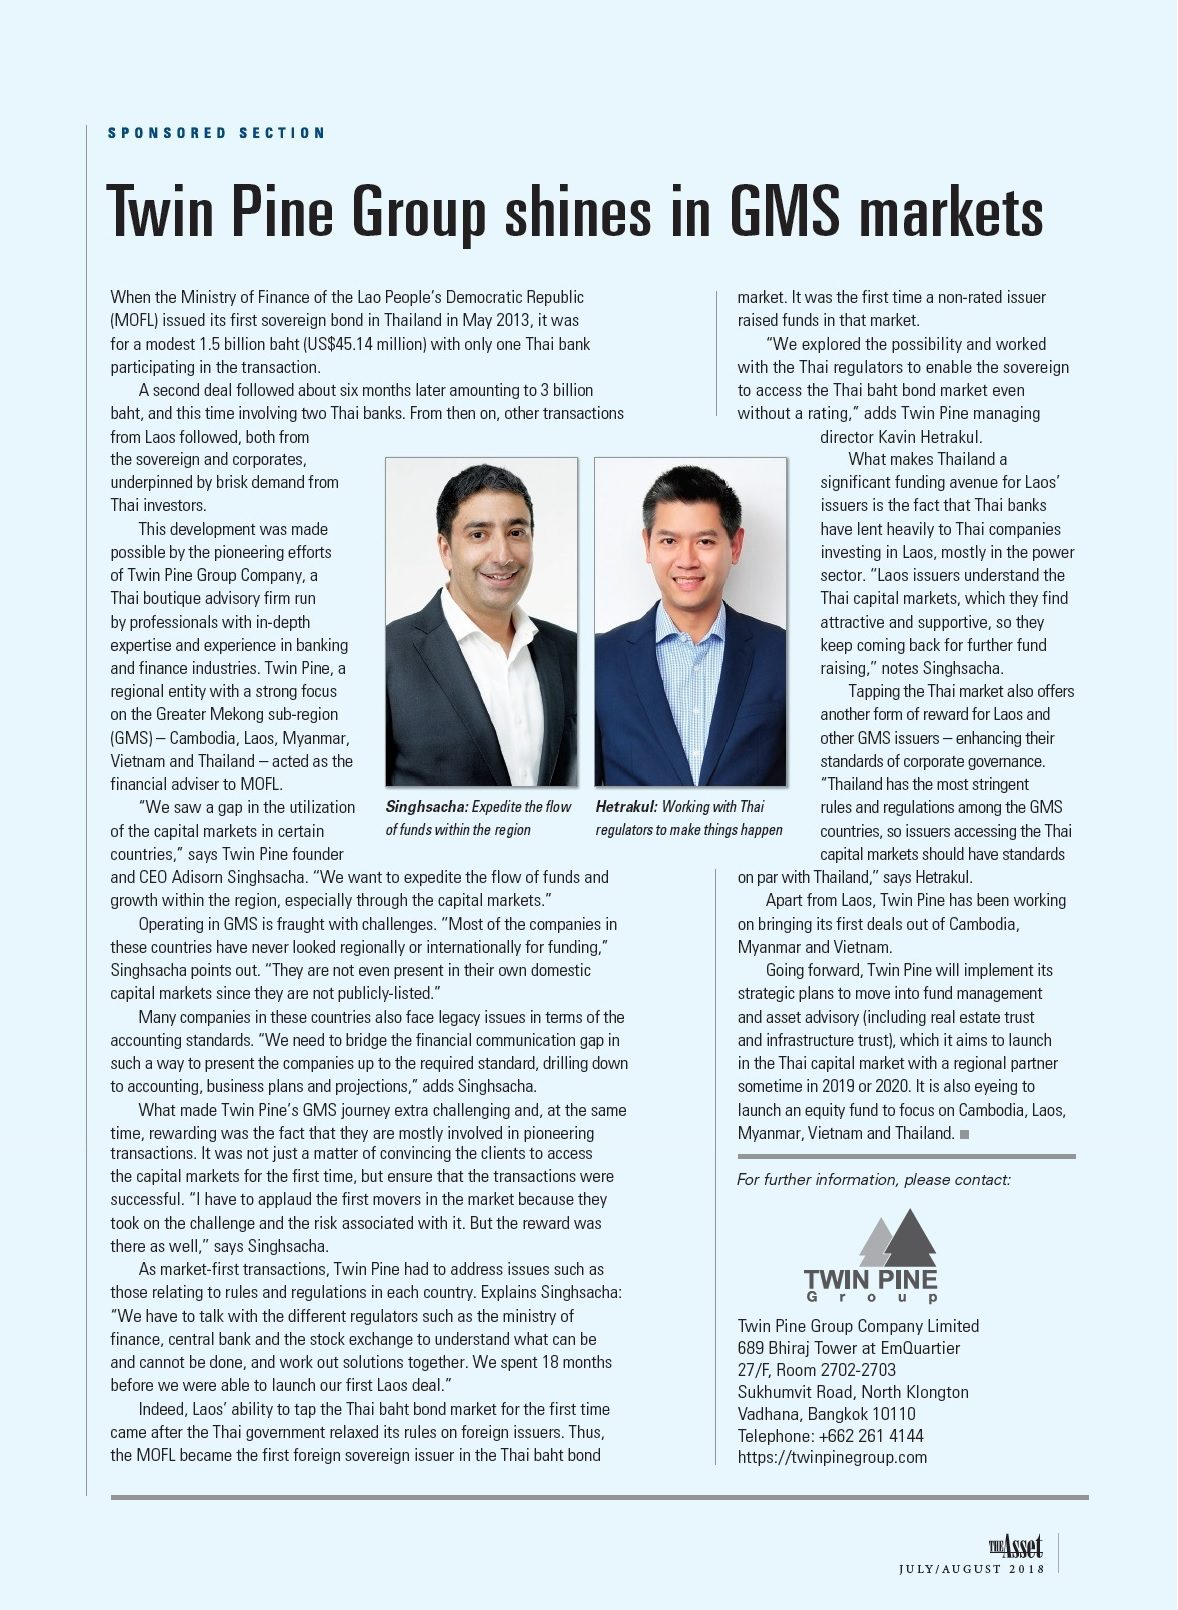 The Asset Magazine – Twin Pine Group shines in GMS markets